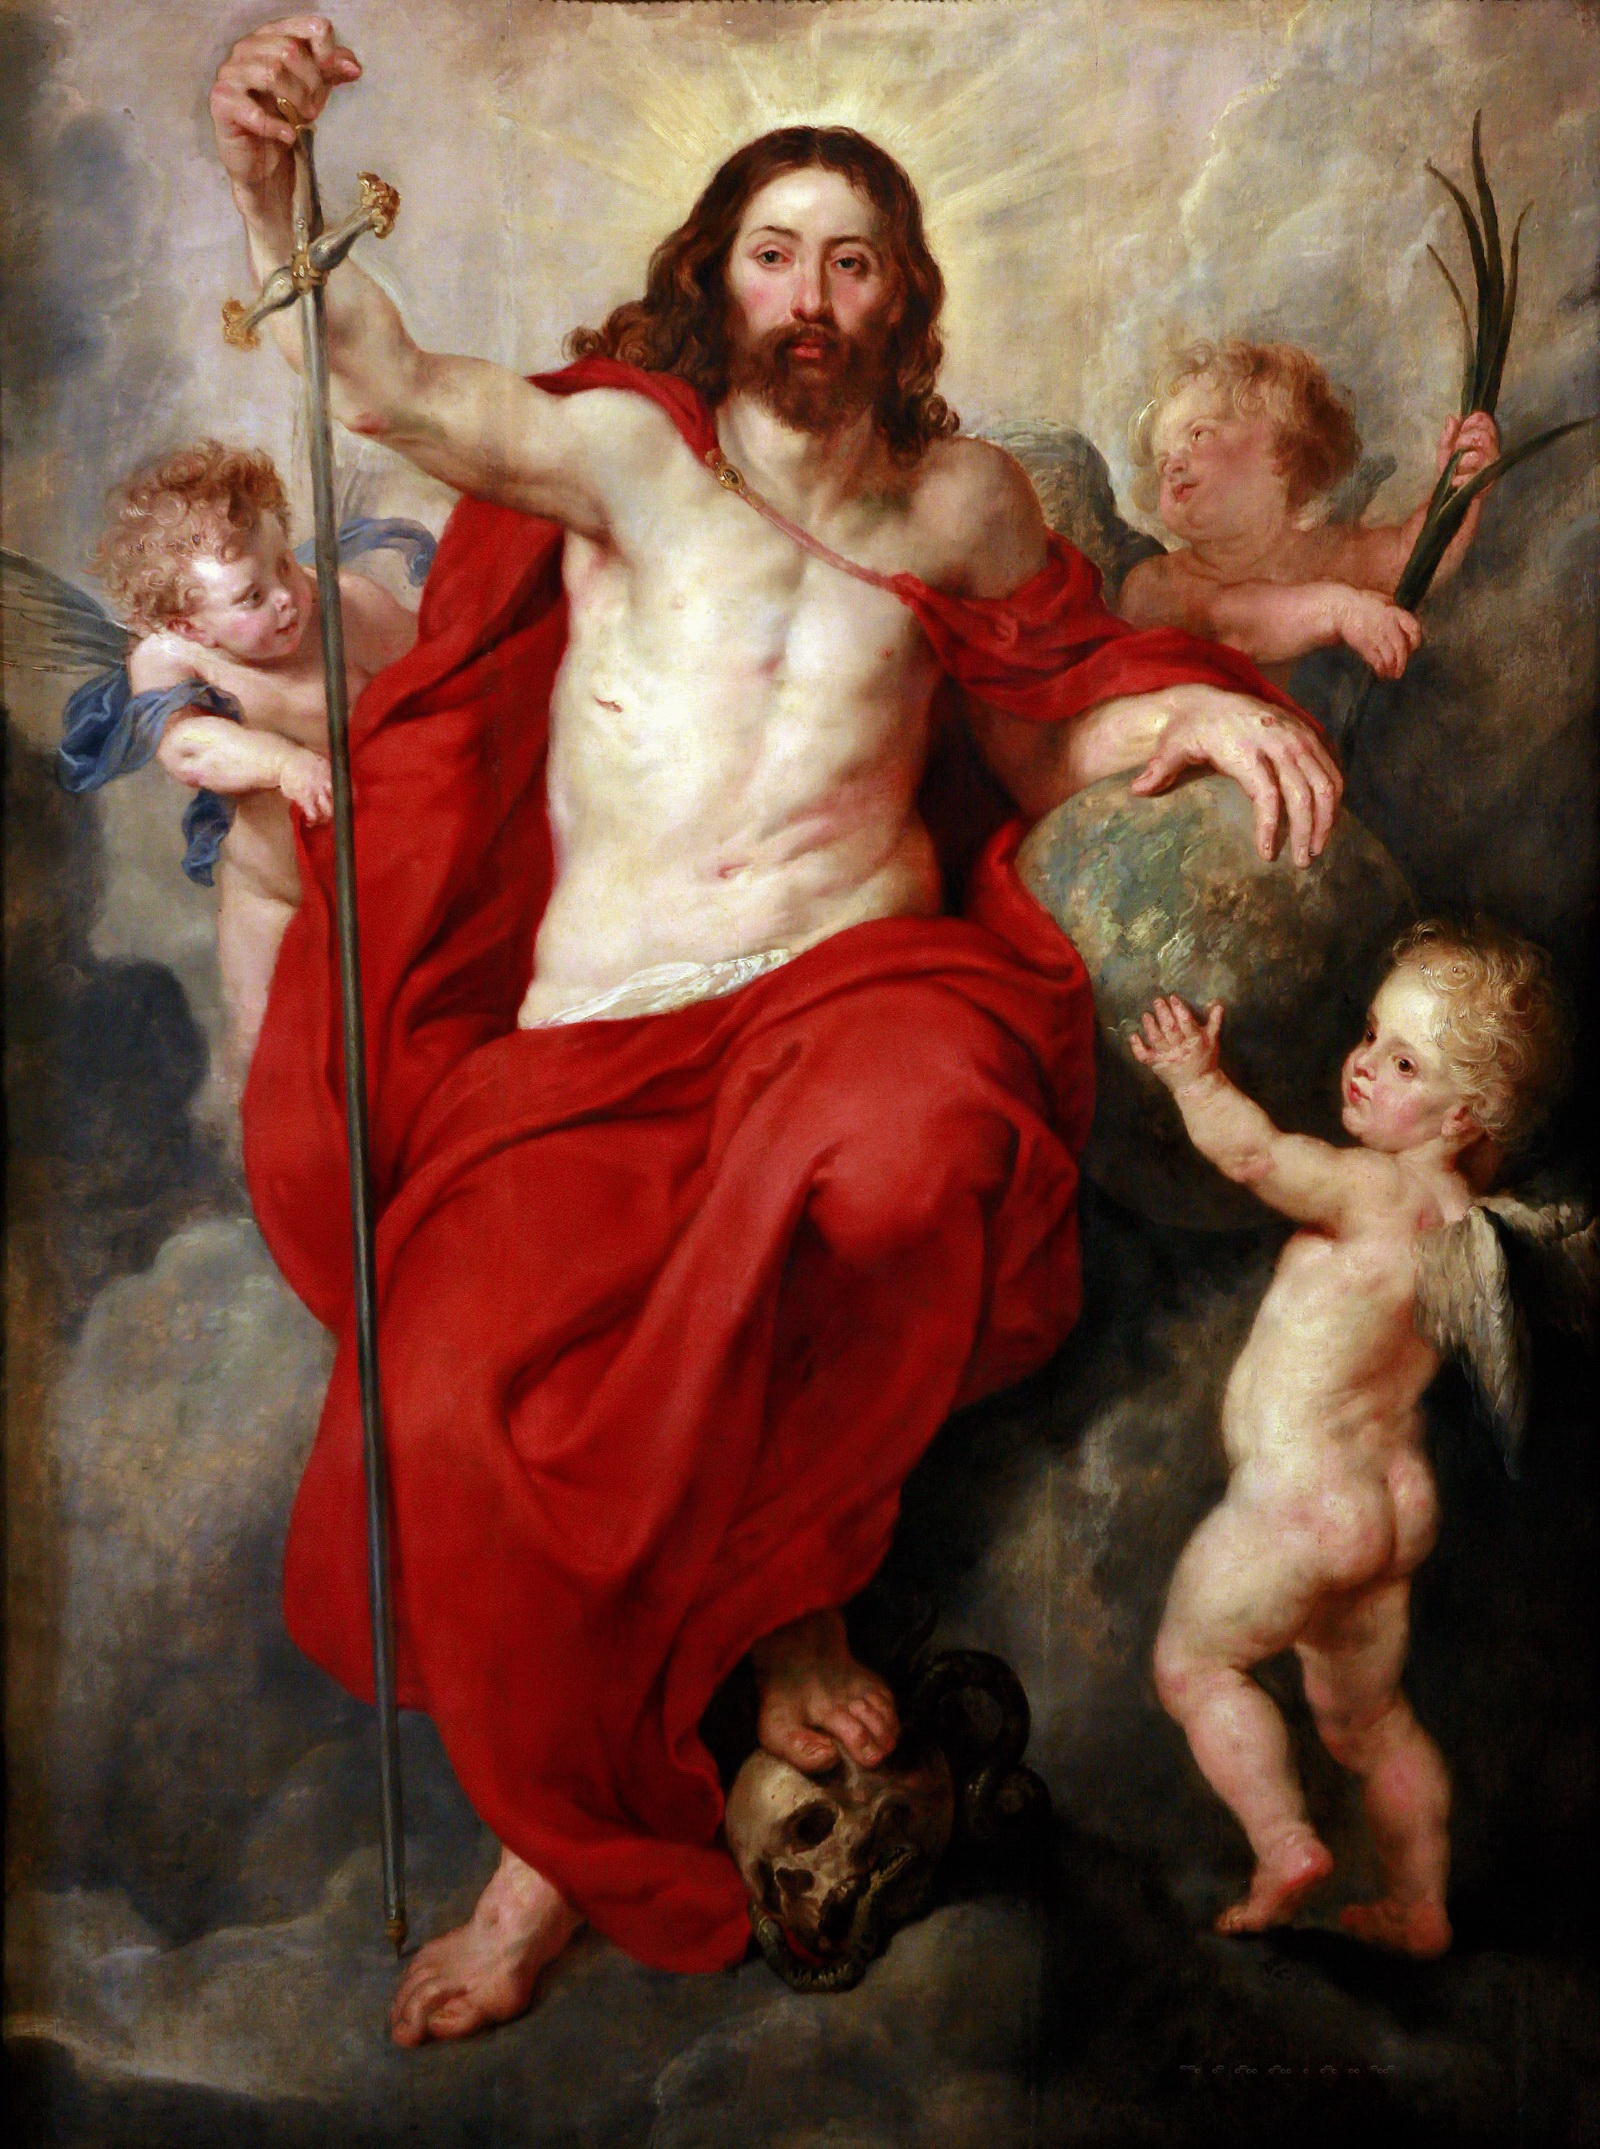 peter paul rubens essay Peter paul rubens contribute an essay glossary close elevation of the cross, in smarthistory, november 19, 2015, accessed april 10, 2018.